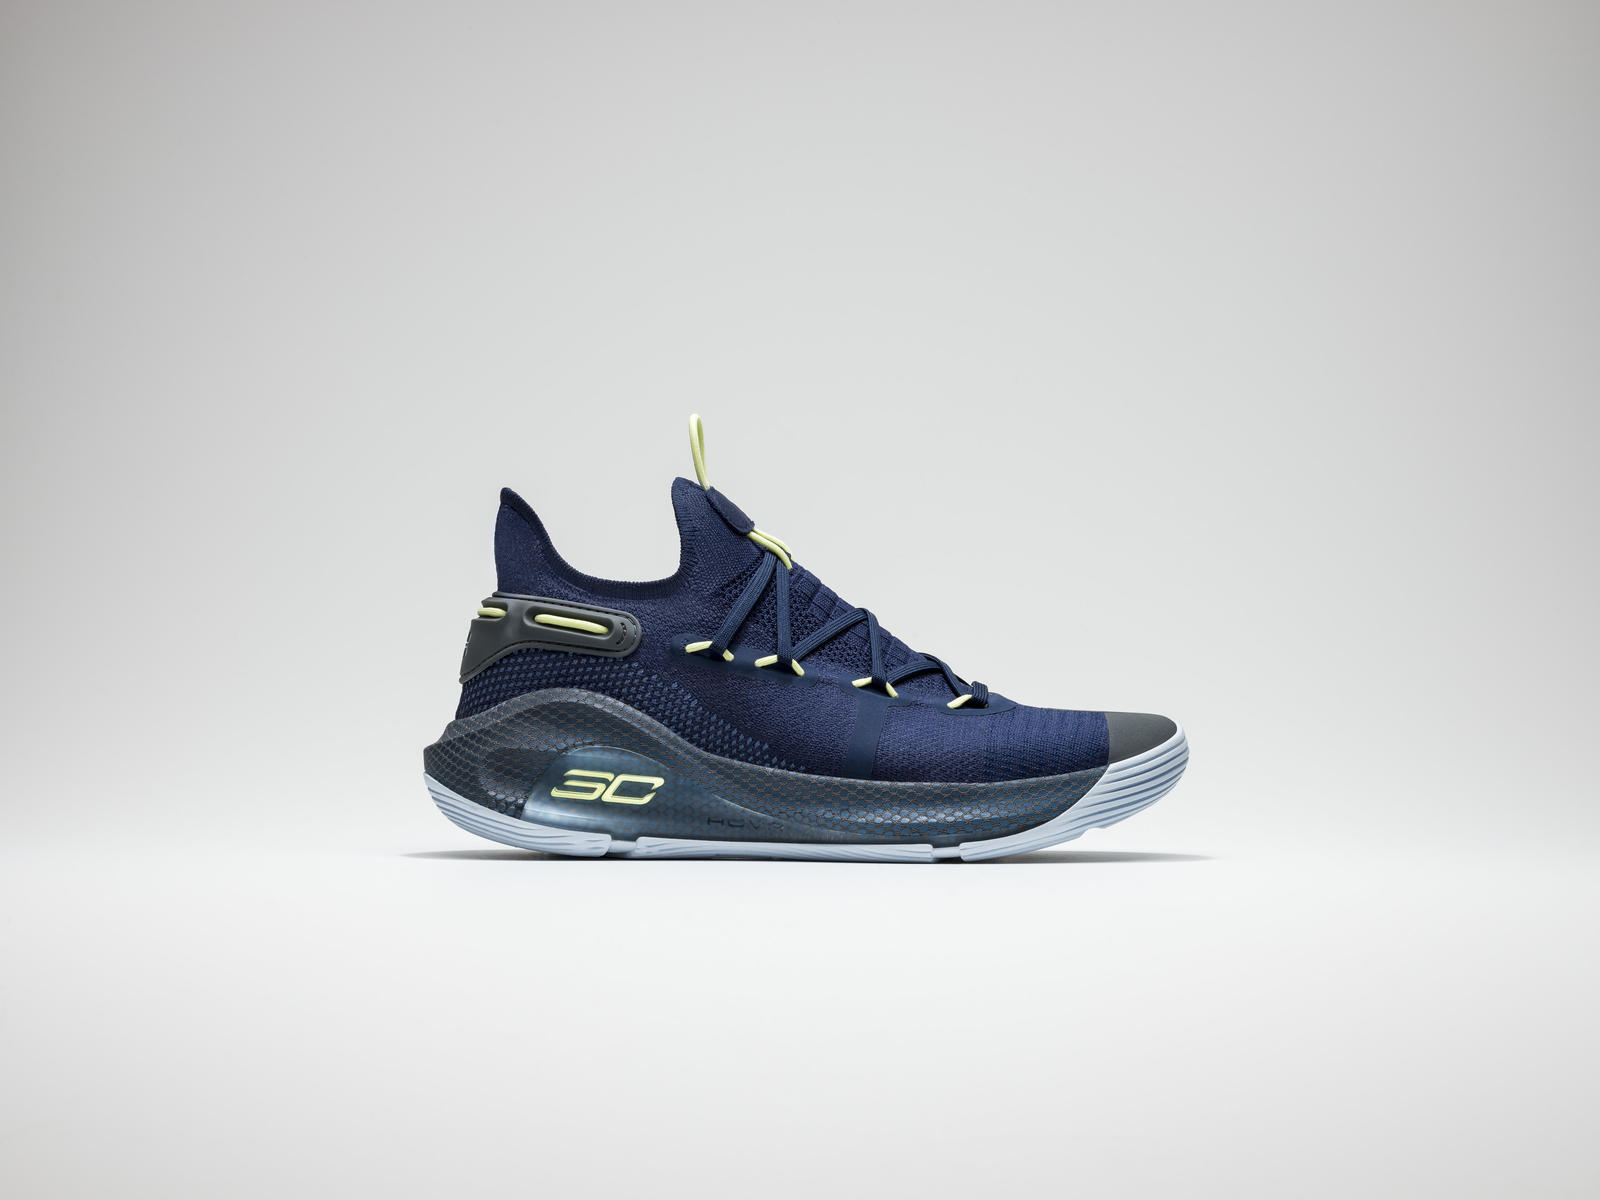 5c4d2c43 Introducing the Curry 6 International Blvd Colorway | UA Newsroom